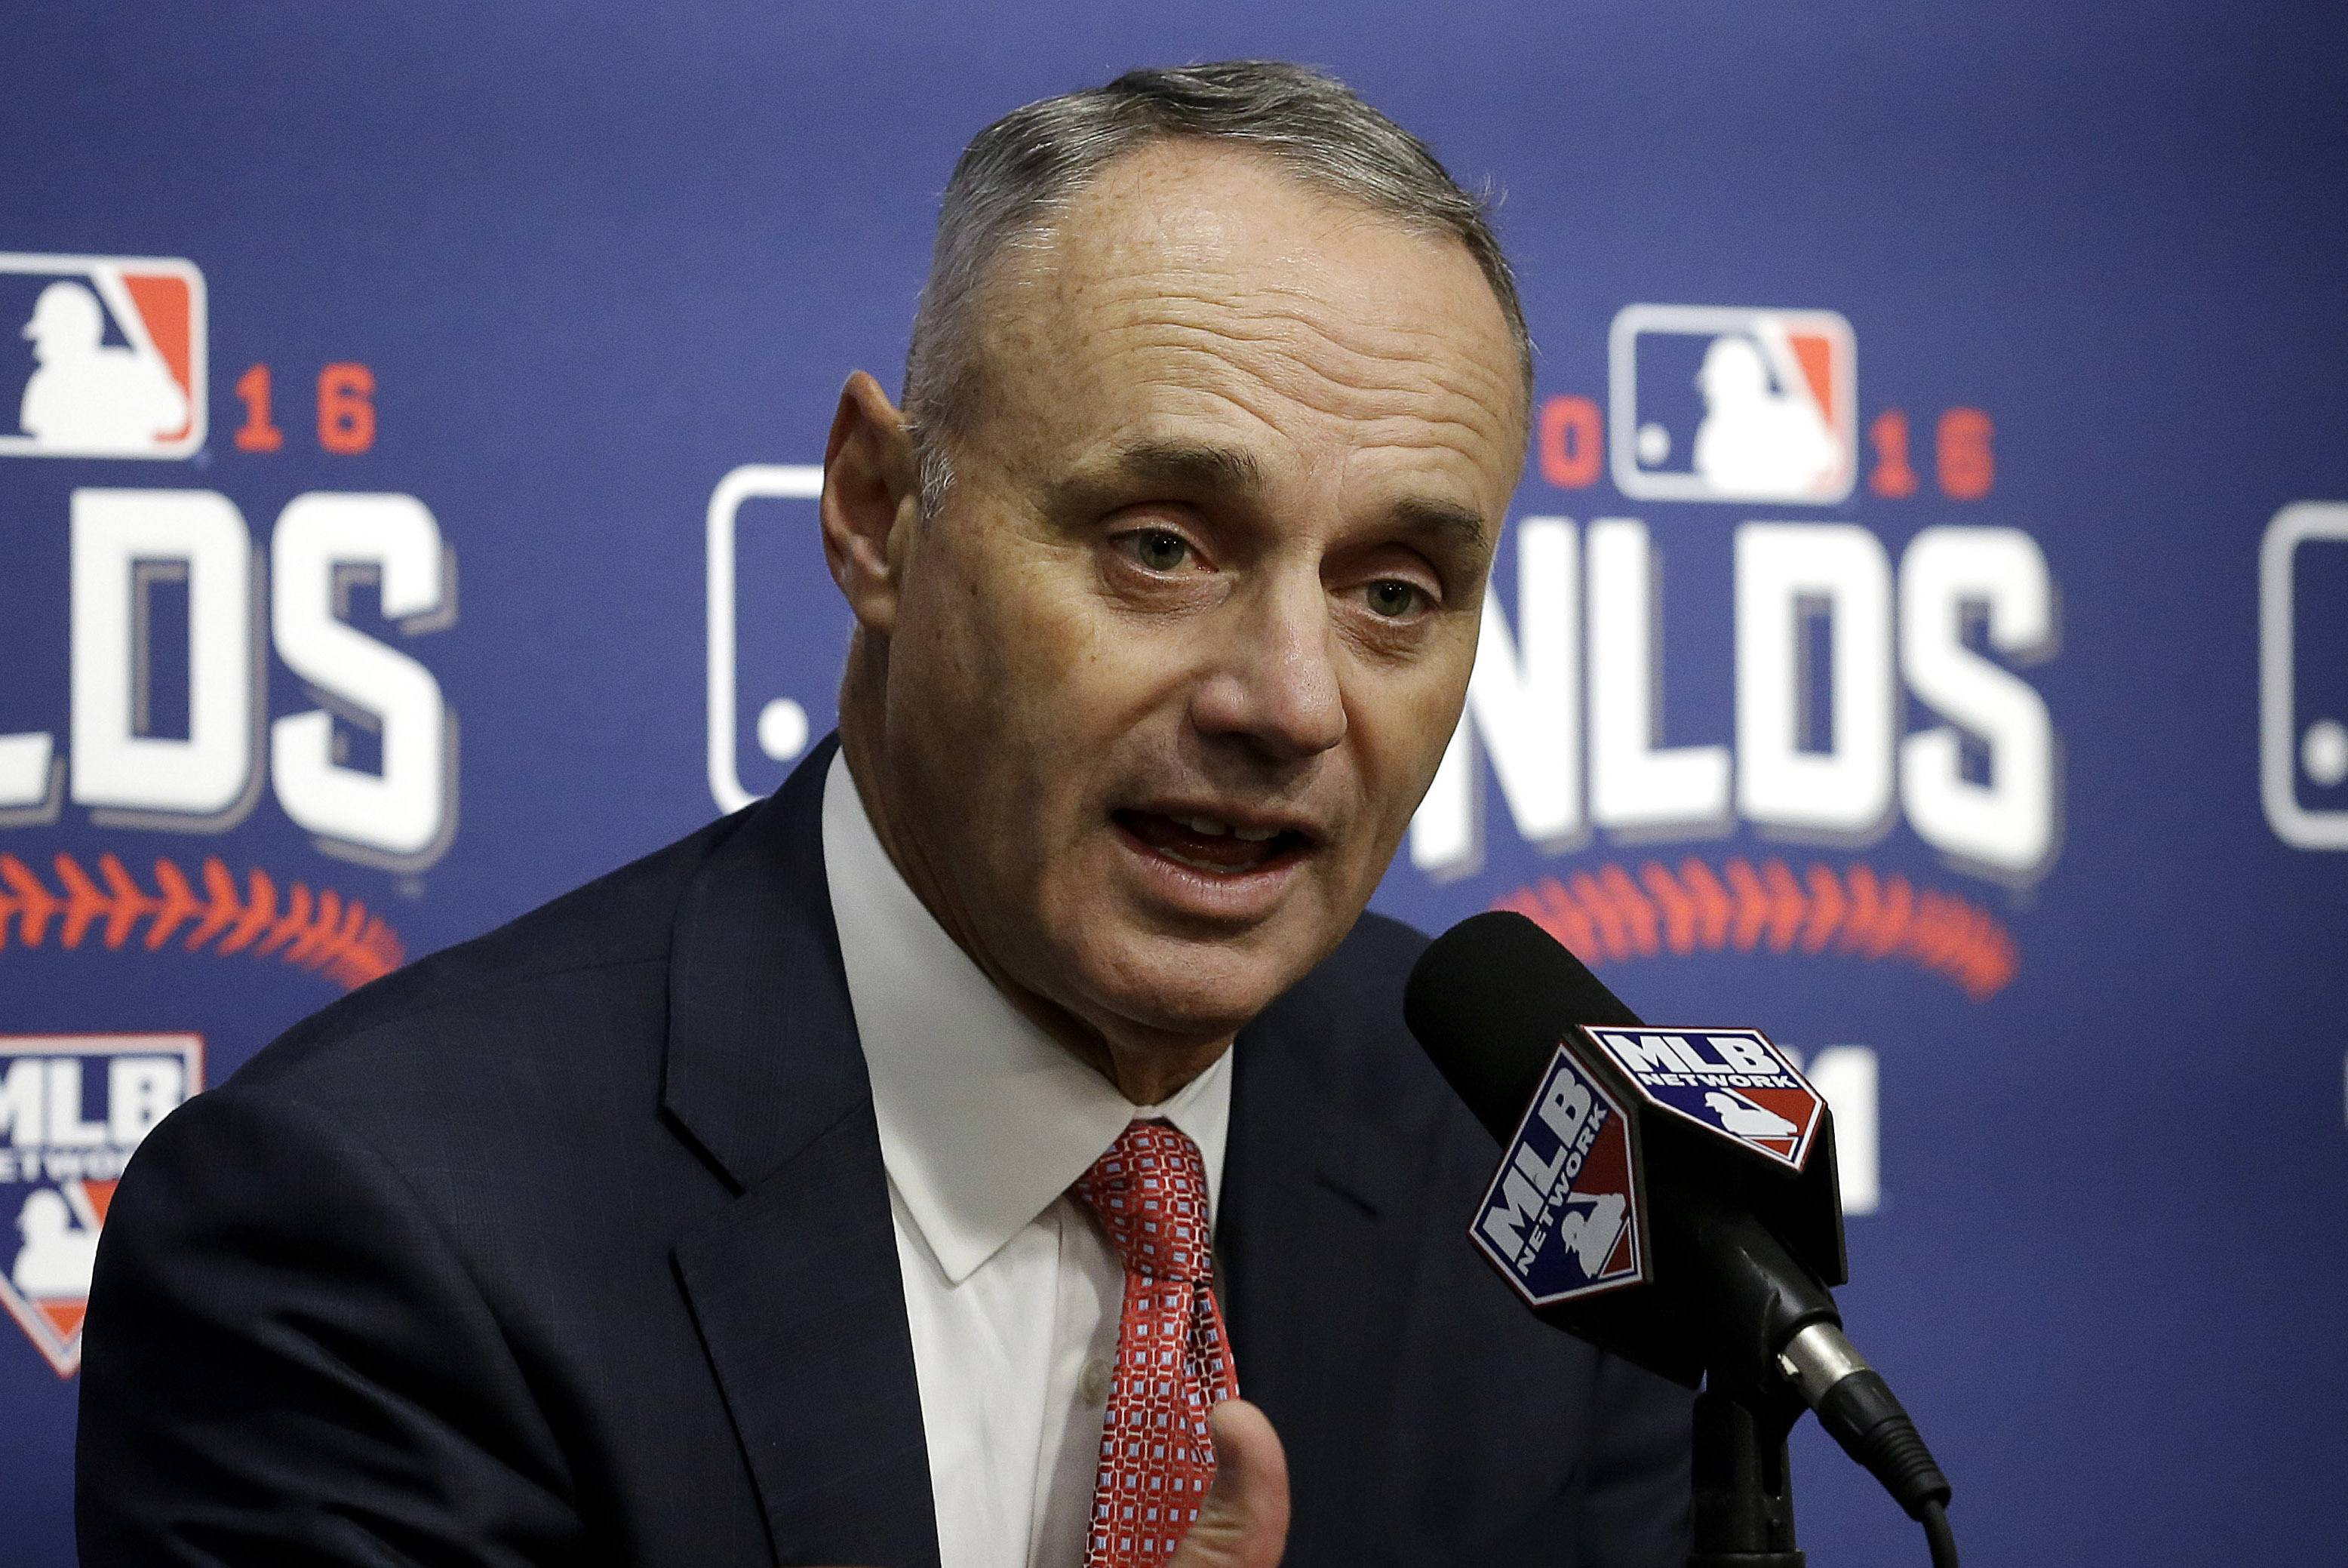 Major League Baseball Commissioner Rob Manfred seems to want to change aspects of baseball just to say he's made changes. But Barry Rozner writes that change is only good when it's done for the greater good.